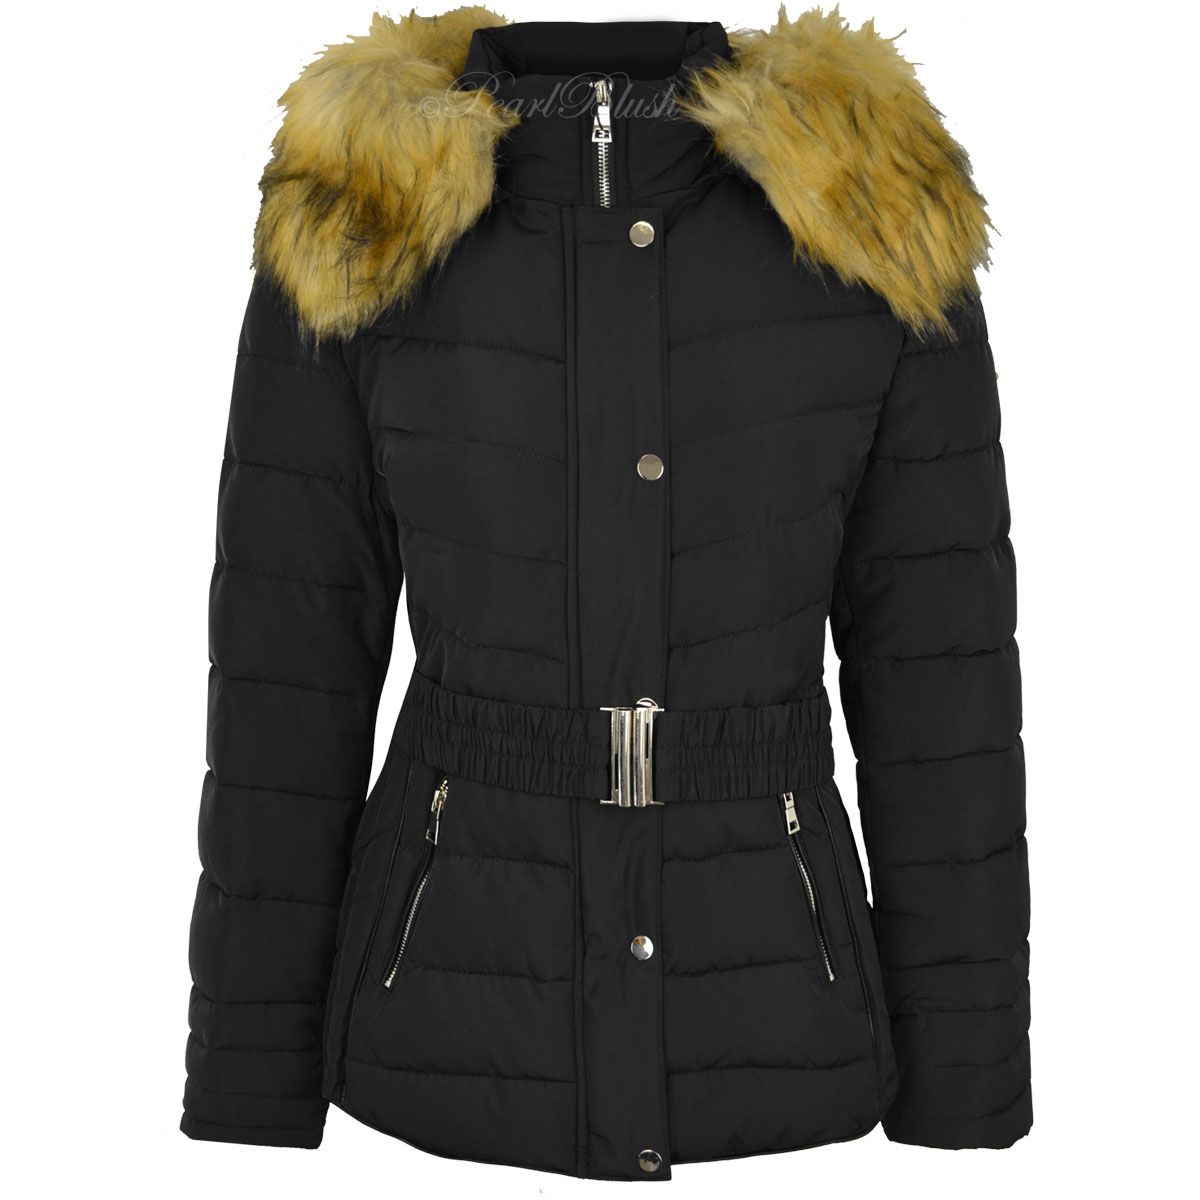 funon.ml Suede Velvet Coats Winter Jacket Women Plus Size 3XL Warm Parka Women Basic Coats Casual Cotton Wadded Jacket Female. Sold by VIRTUAL STORE USA. $ Lands' End Women's Plus Size Faux Fur Hooded Down Winter .